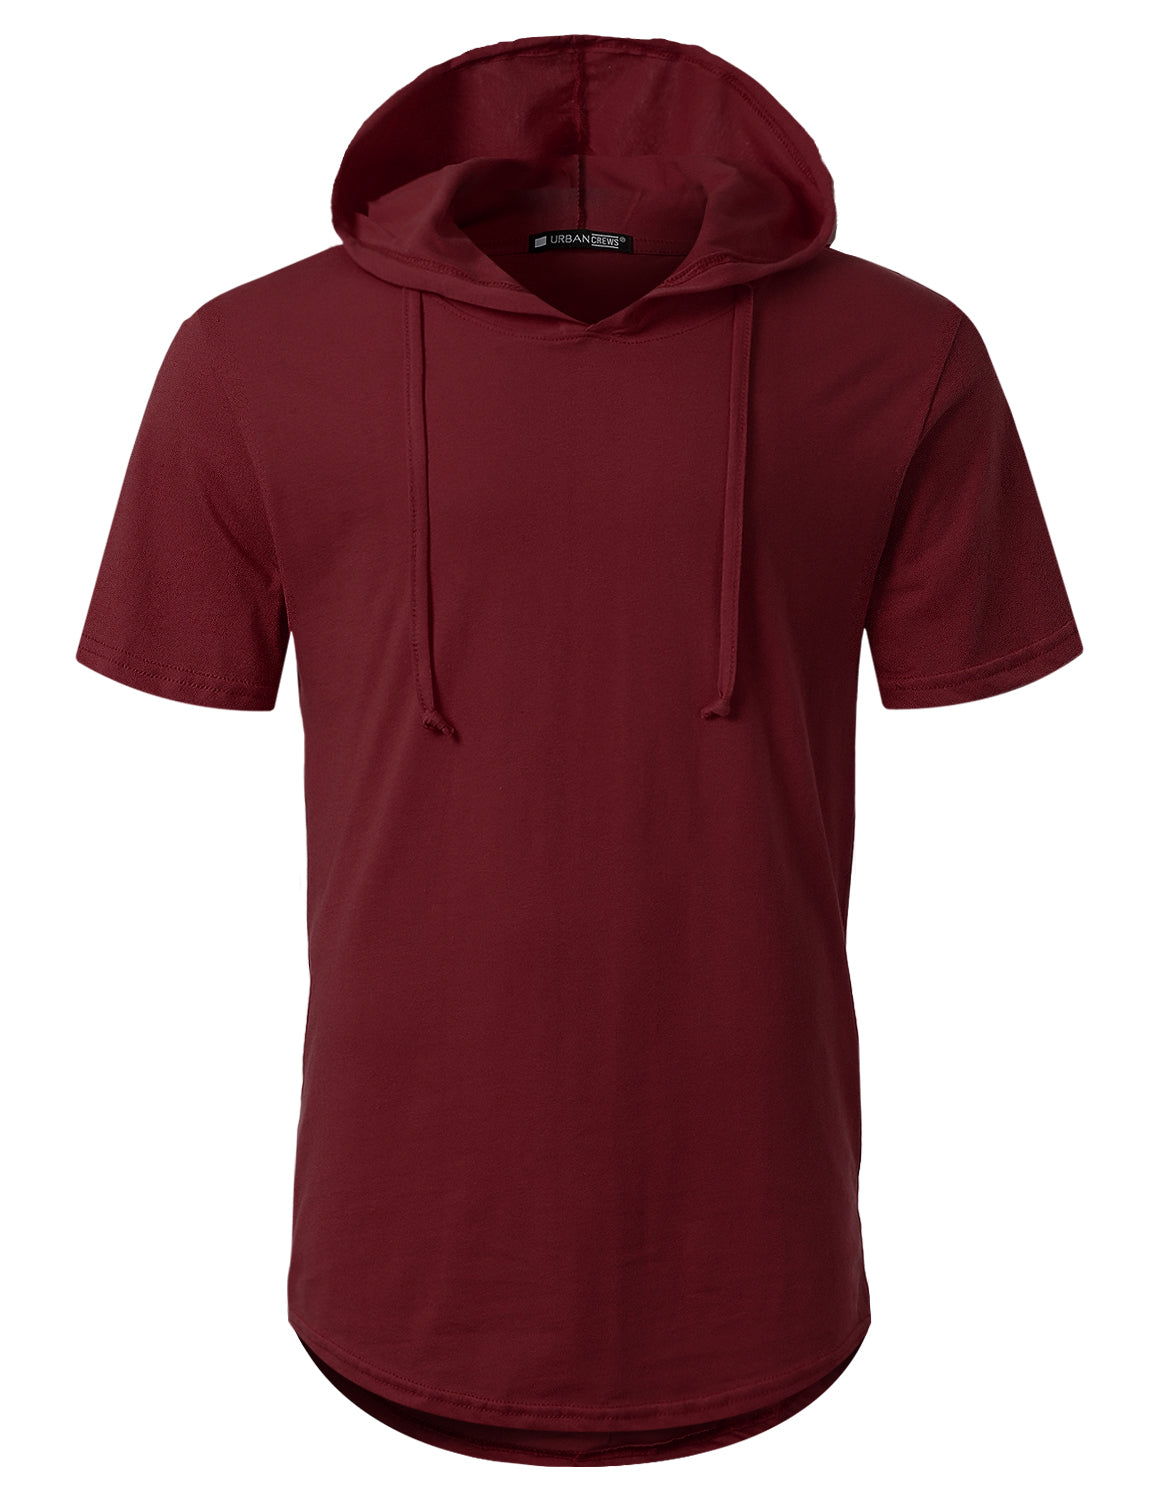 BURGUNDY Short Sleeve Pullover Hoodie Shirt - URBANCREWS